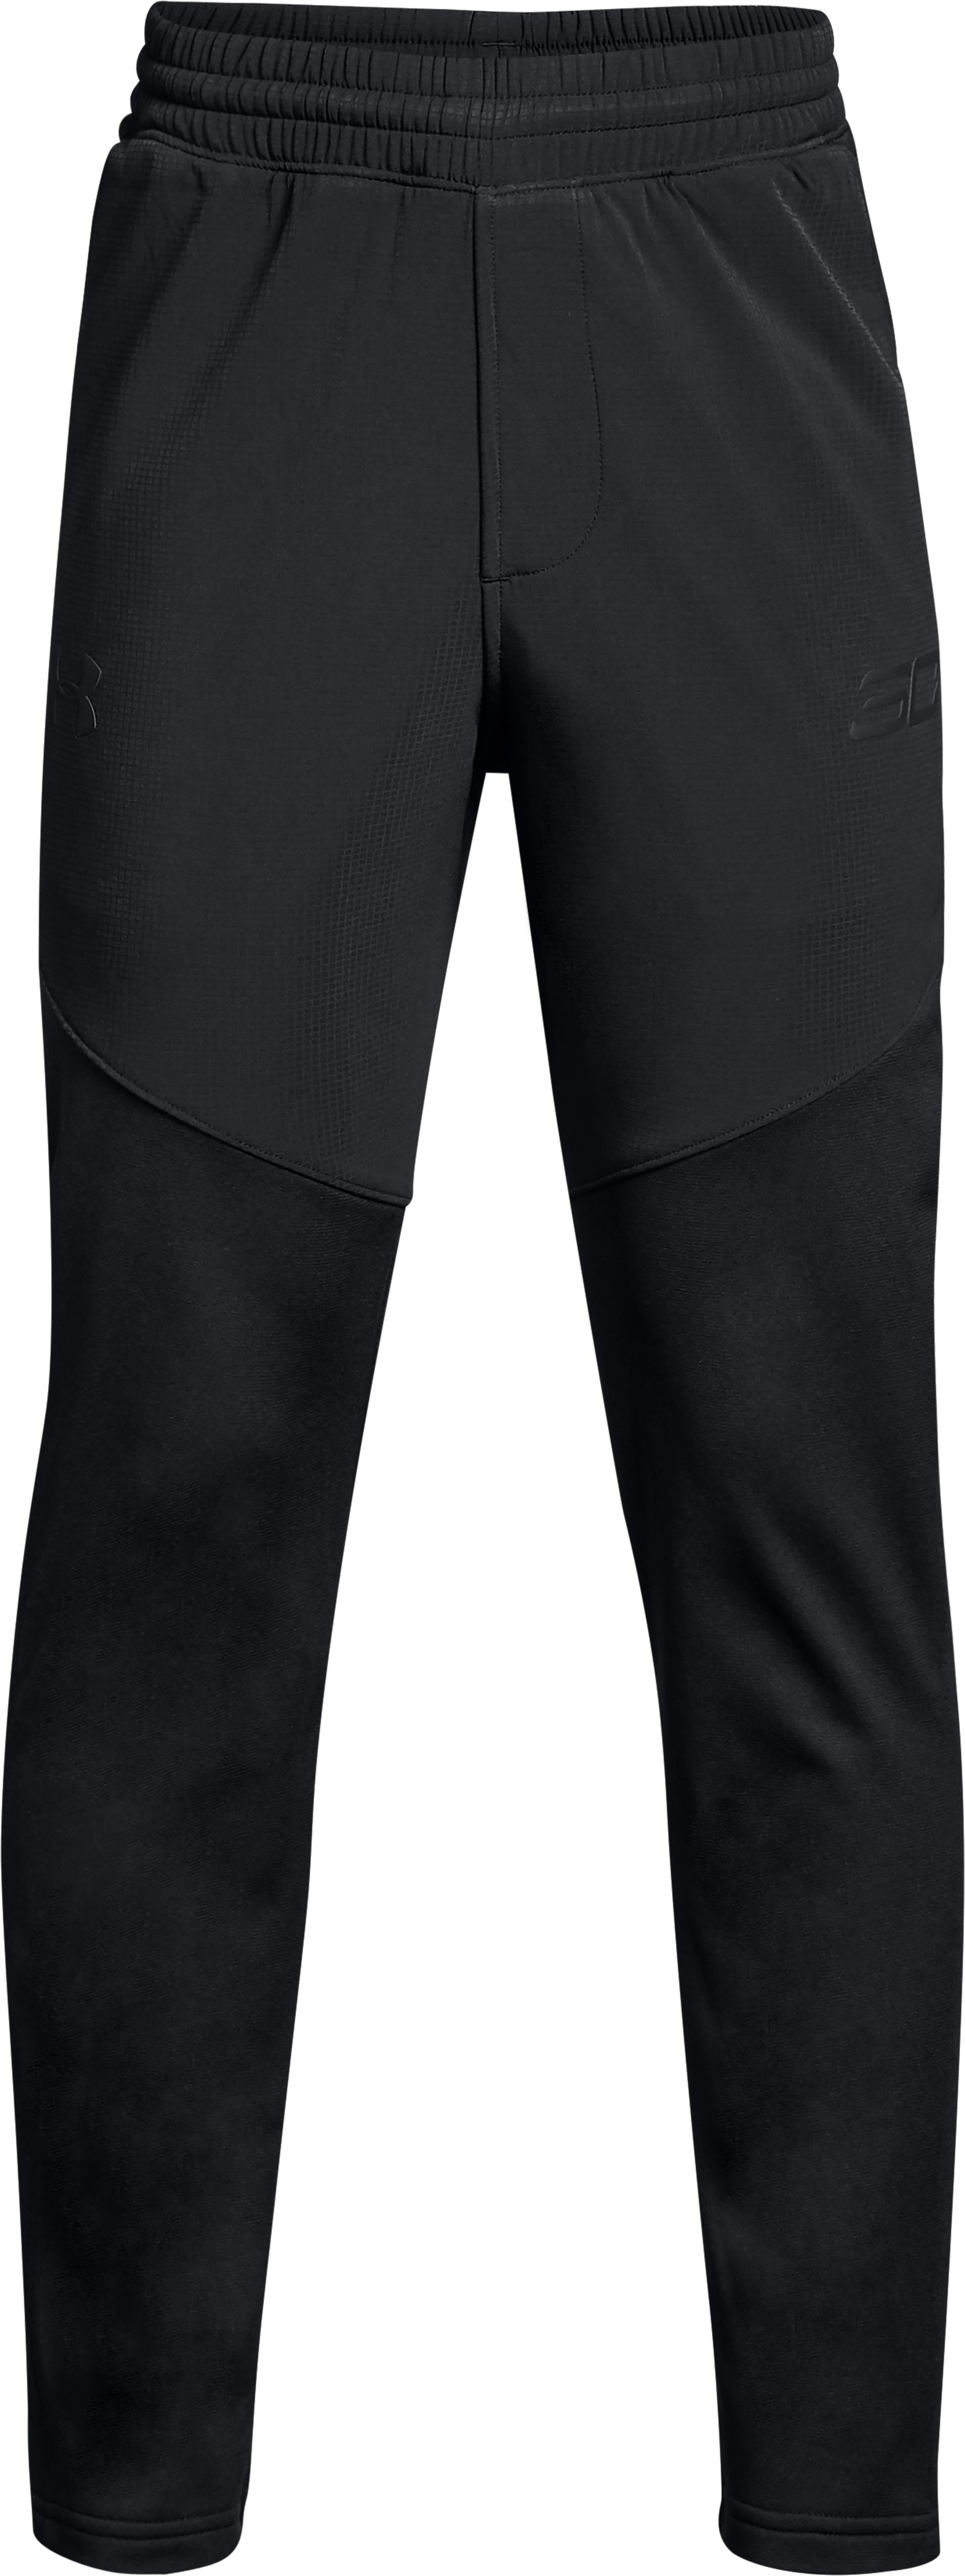 Boys' SC30 Warm-Up Pants, Black